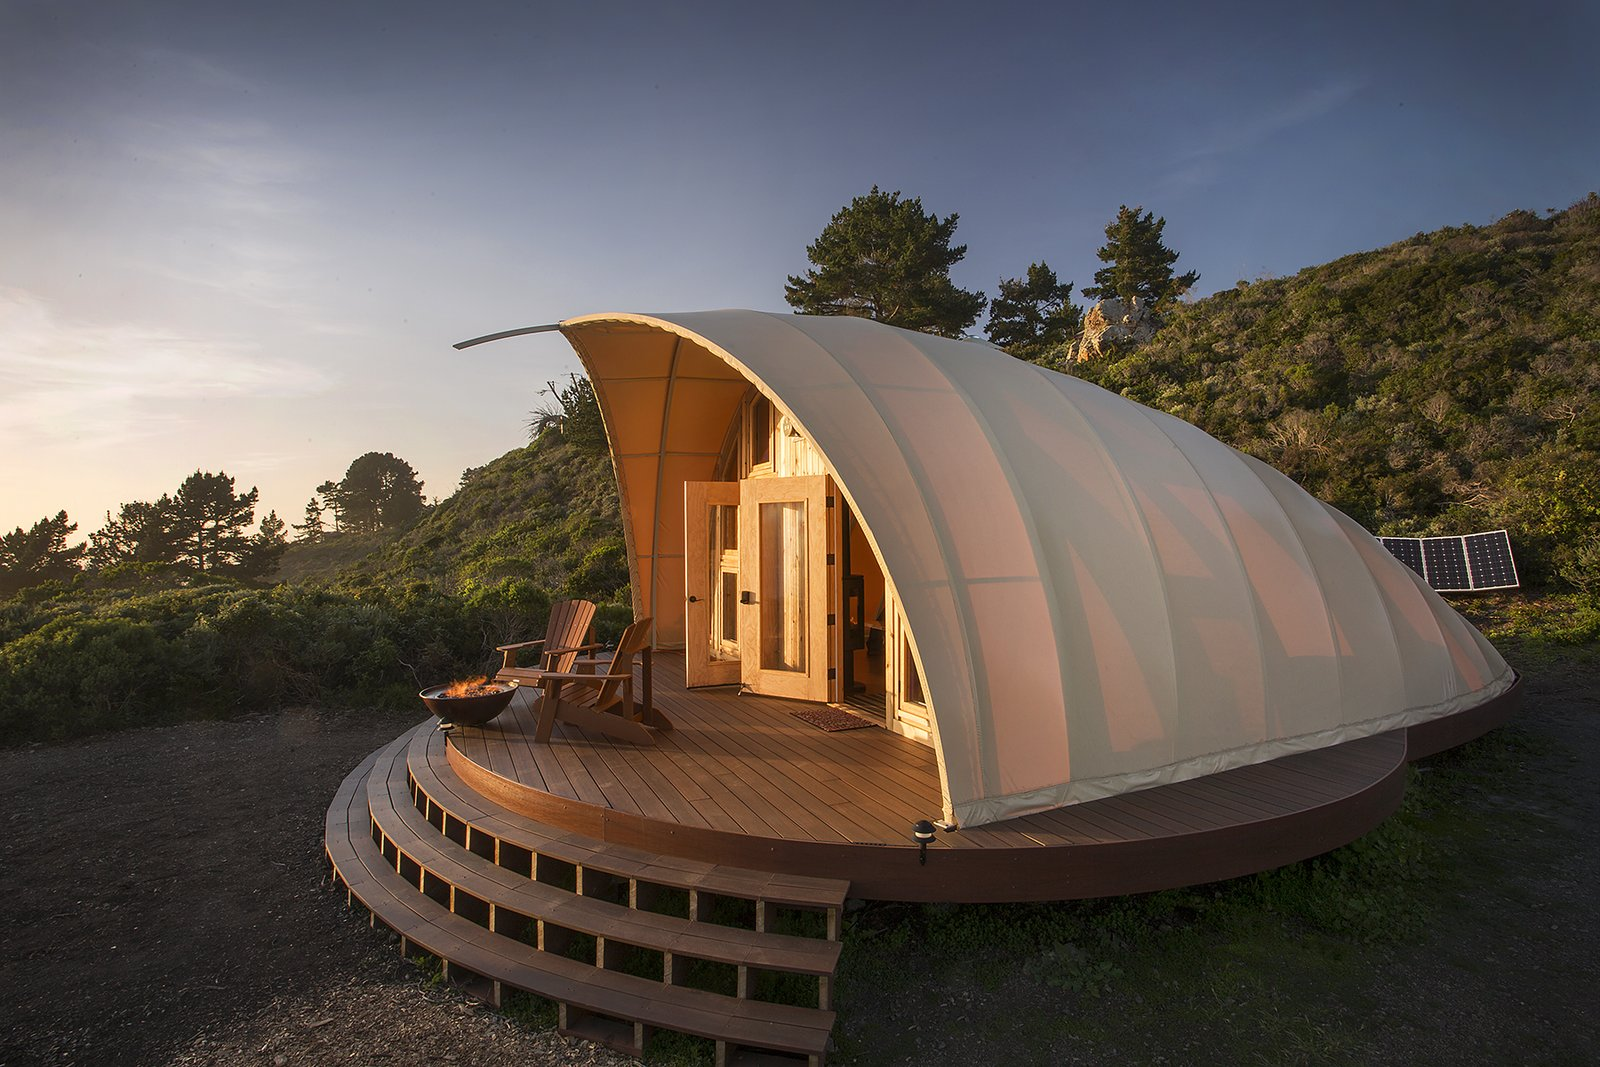 The Autonomous Tent - It's kind of like a yurt, only the high tech manufacturing process ensures absolute precision providing simple installation and a tight seal between fabric and frame that cannot be accomplished with a yurt, making the structure look and feel more permanent.   Cabins & Hideouts by Stephen Blake from The Autonomous Tent at Treebones Resort